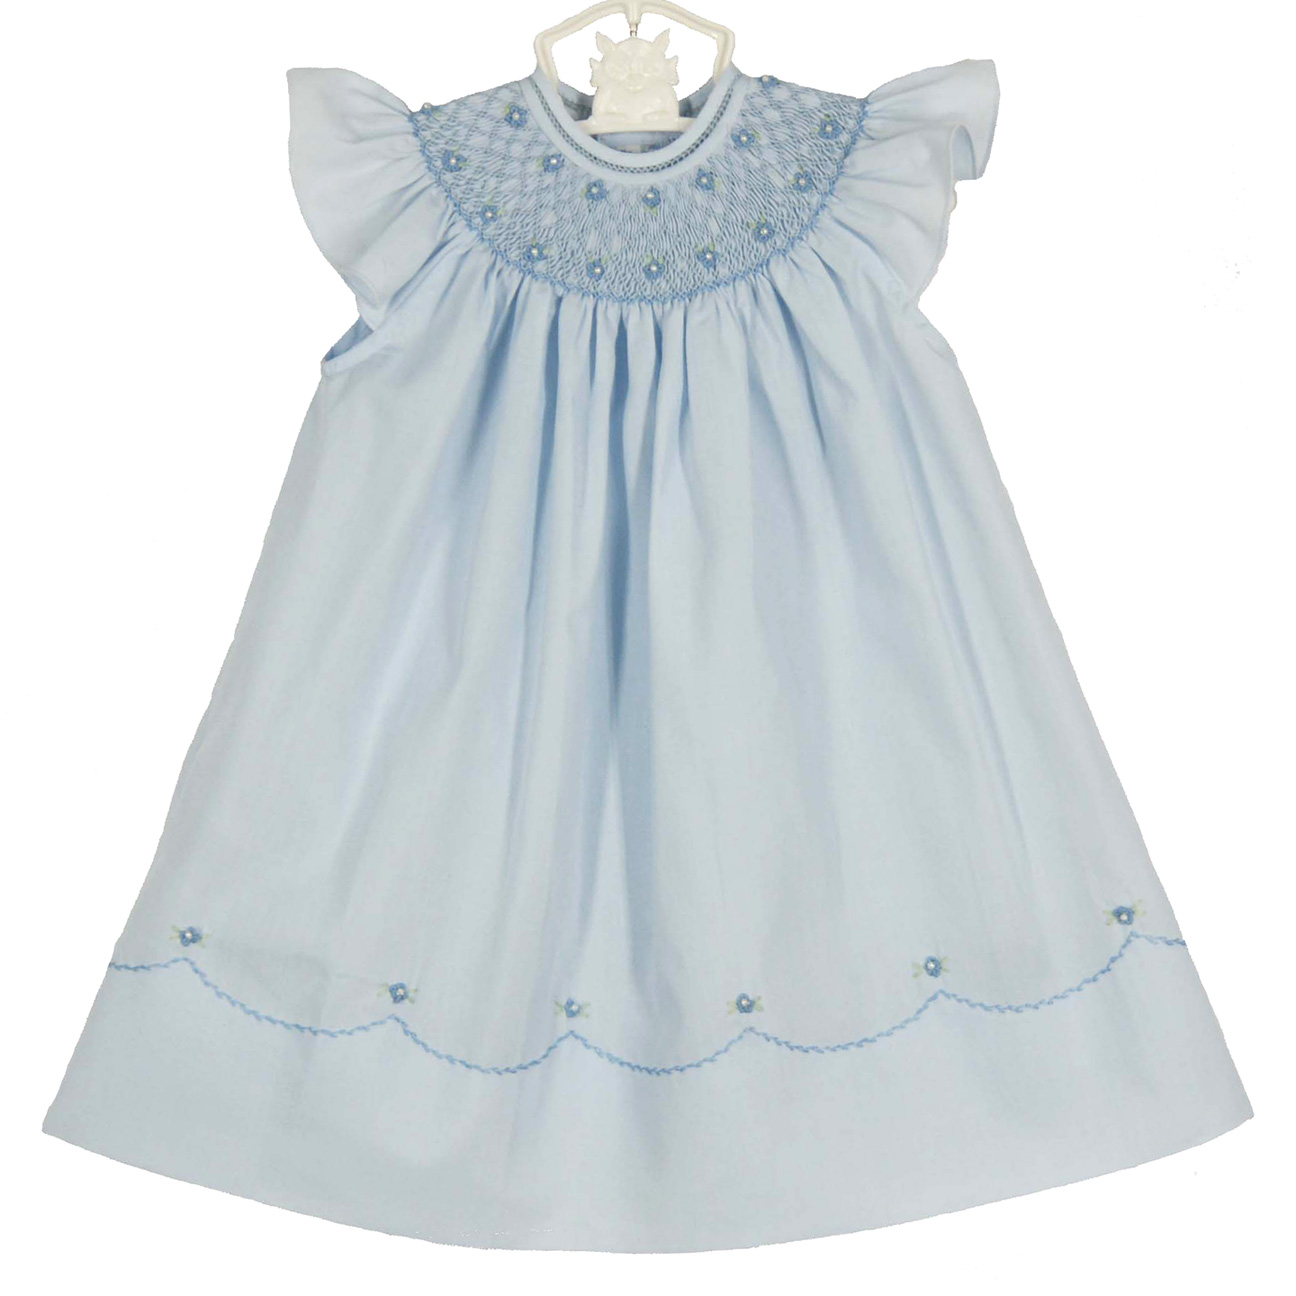 Feltman Brothers Blue Bishop Smocked Baby Dress With